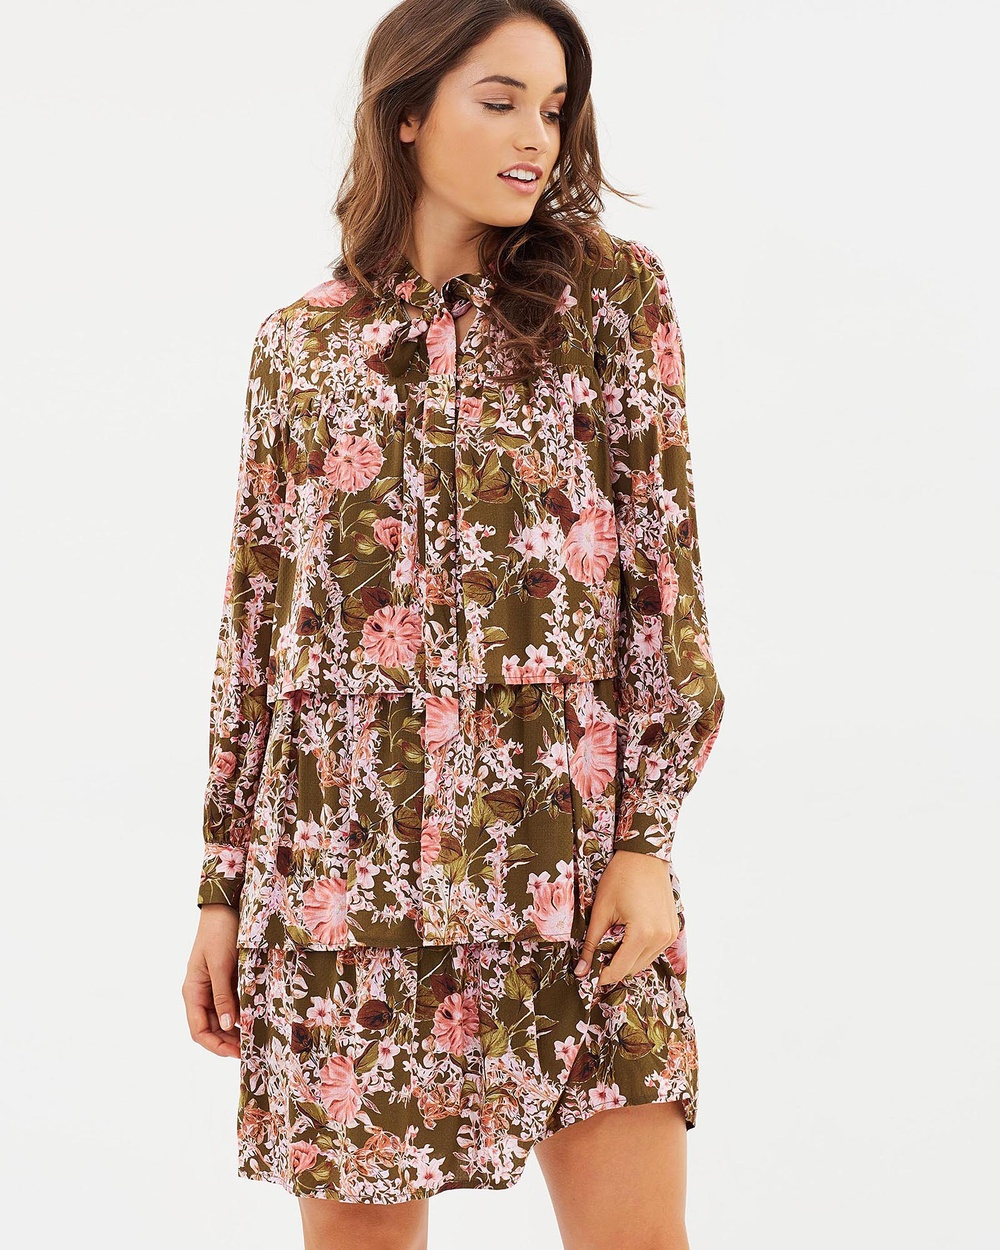 Jag Peggy Printed Dress Dresses multi Peggy Printed Dress